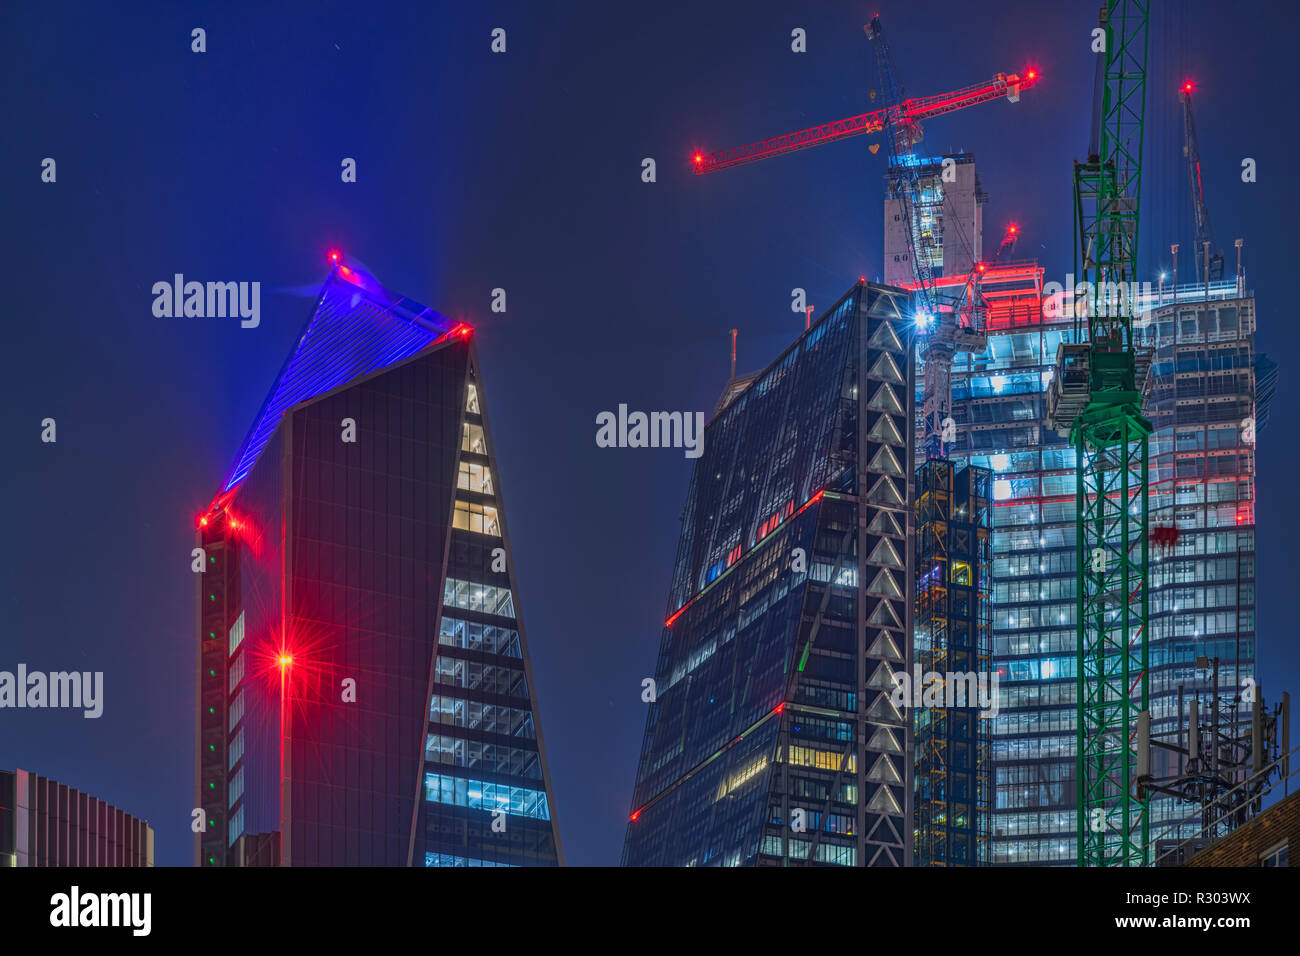 The Scalpel, Cheesegrater and 22 Bishopsgate at night in the City of London - Stock Image